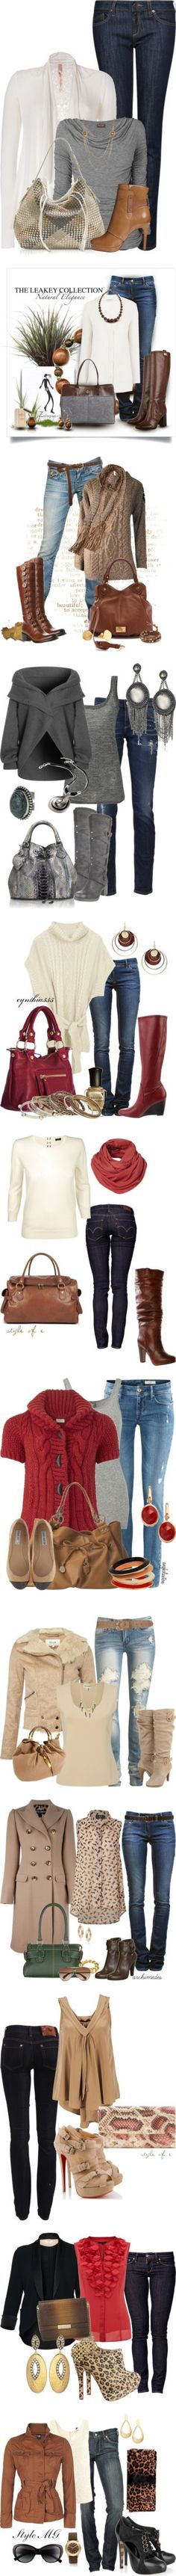 """The Skinny Jean Syndrome"" by esha2001 on Polyvore"